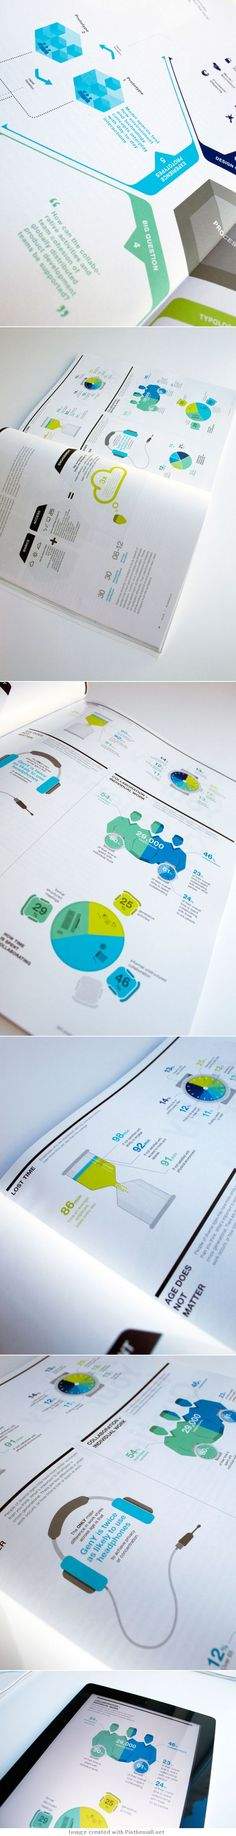 Infographics by Martin Oberhäuser for Steelcase 360 Magazine